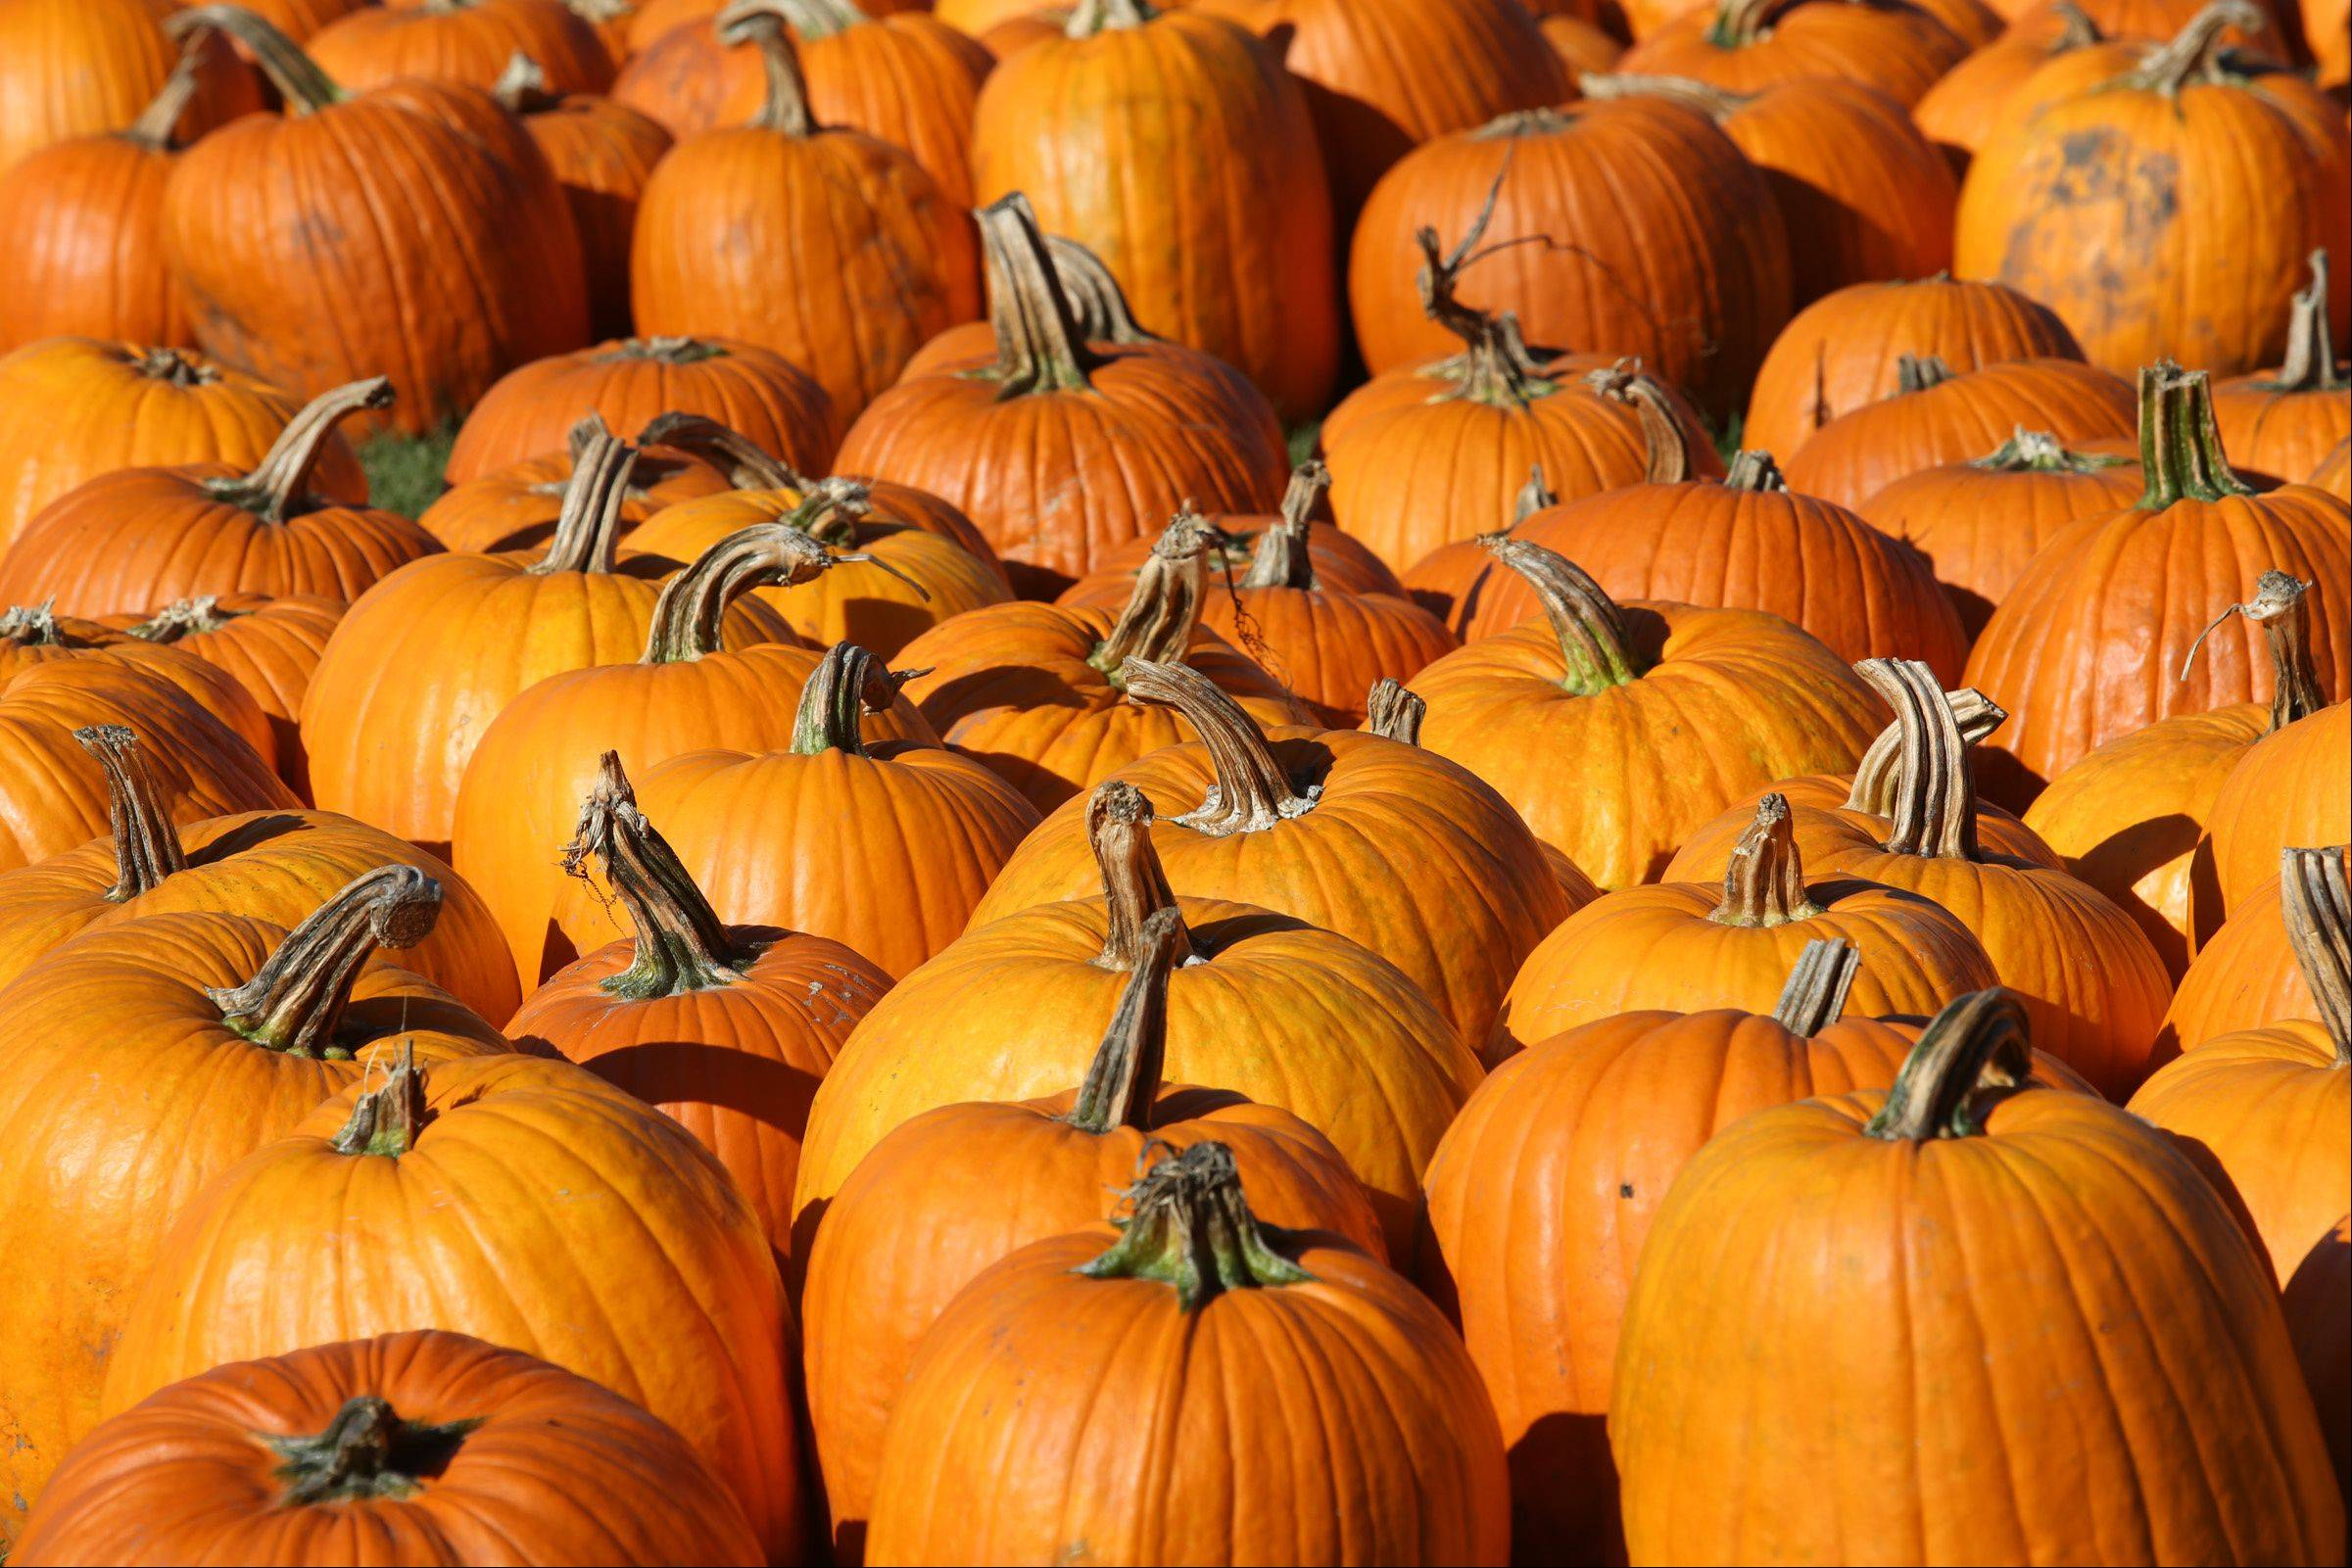 A large selection of pumpkins in all sizes and colors is available at Goebbert�s Pumpkin Patch in Hampshire.